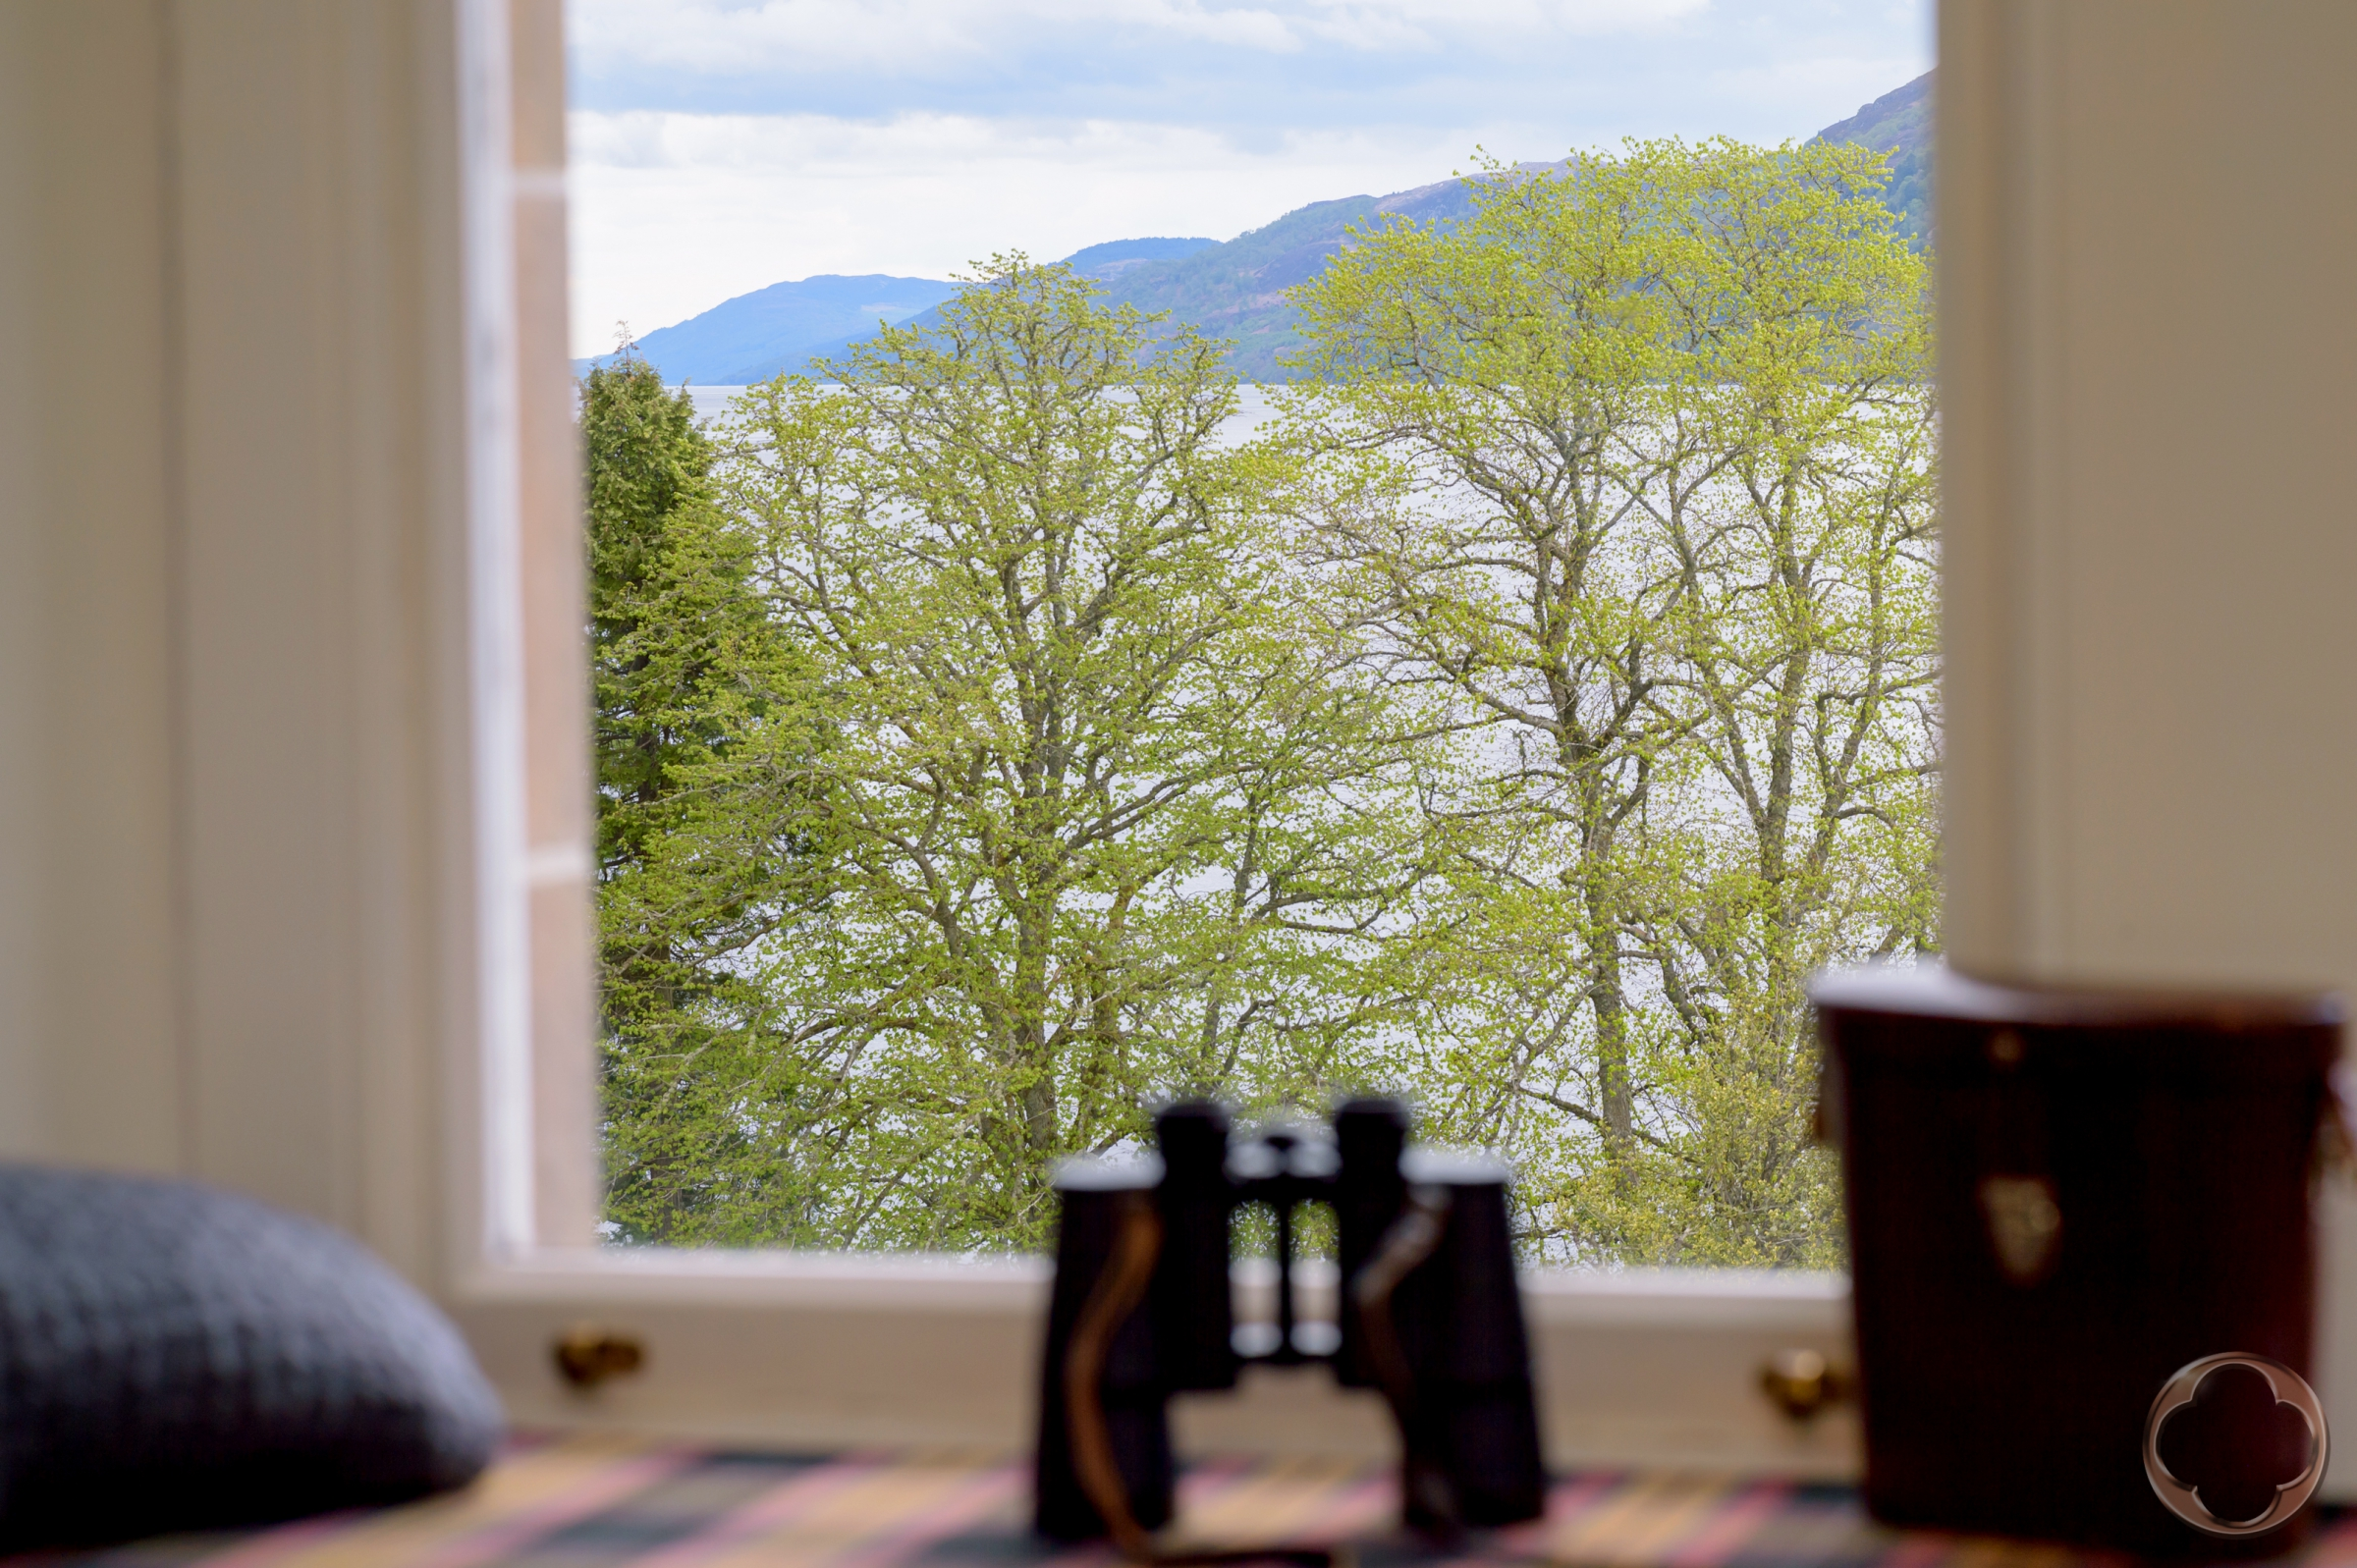 WITH VIEWS OVER LOCH NESS